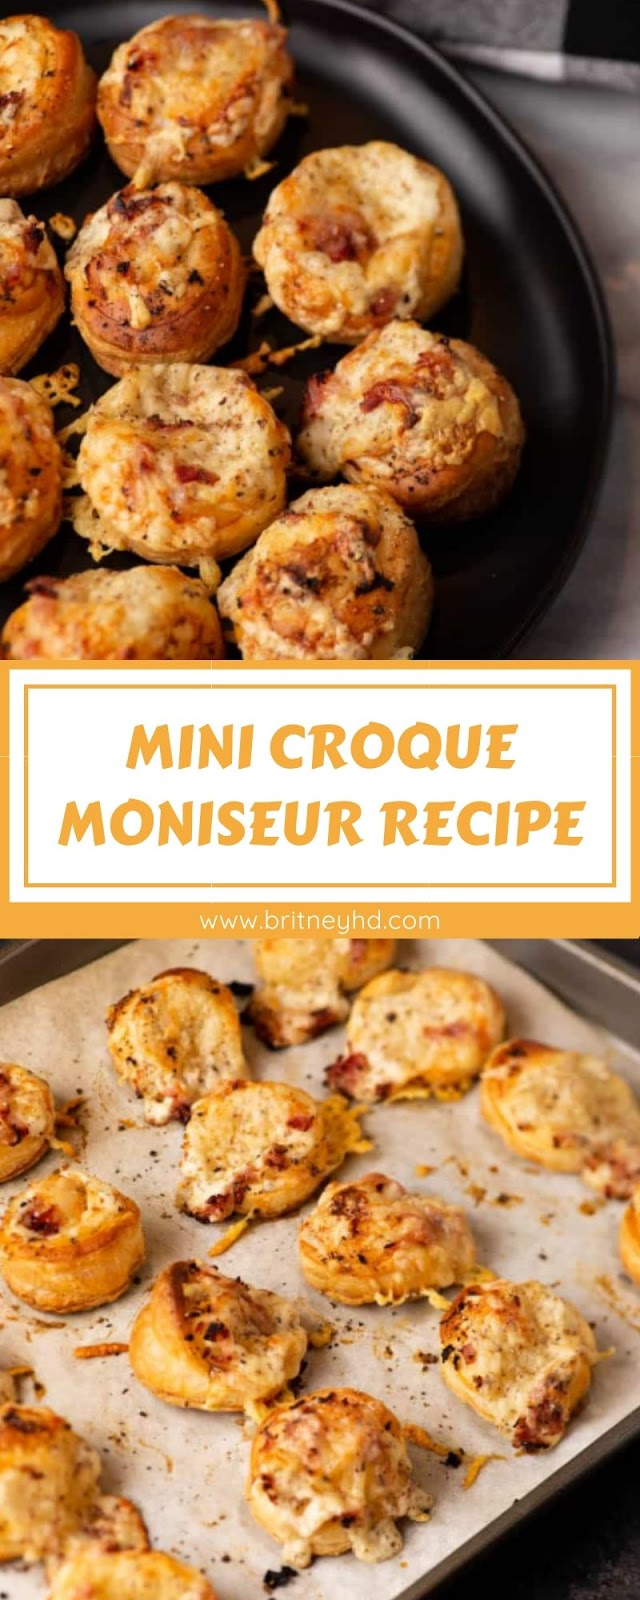 MINI CROQUE MONISEUR RECIPE